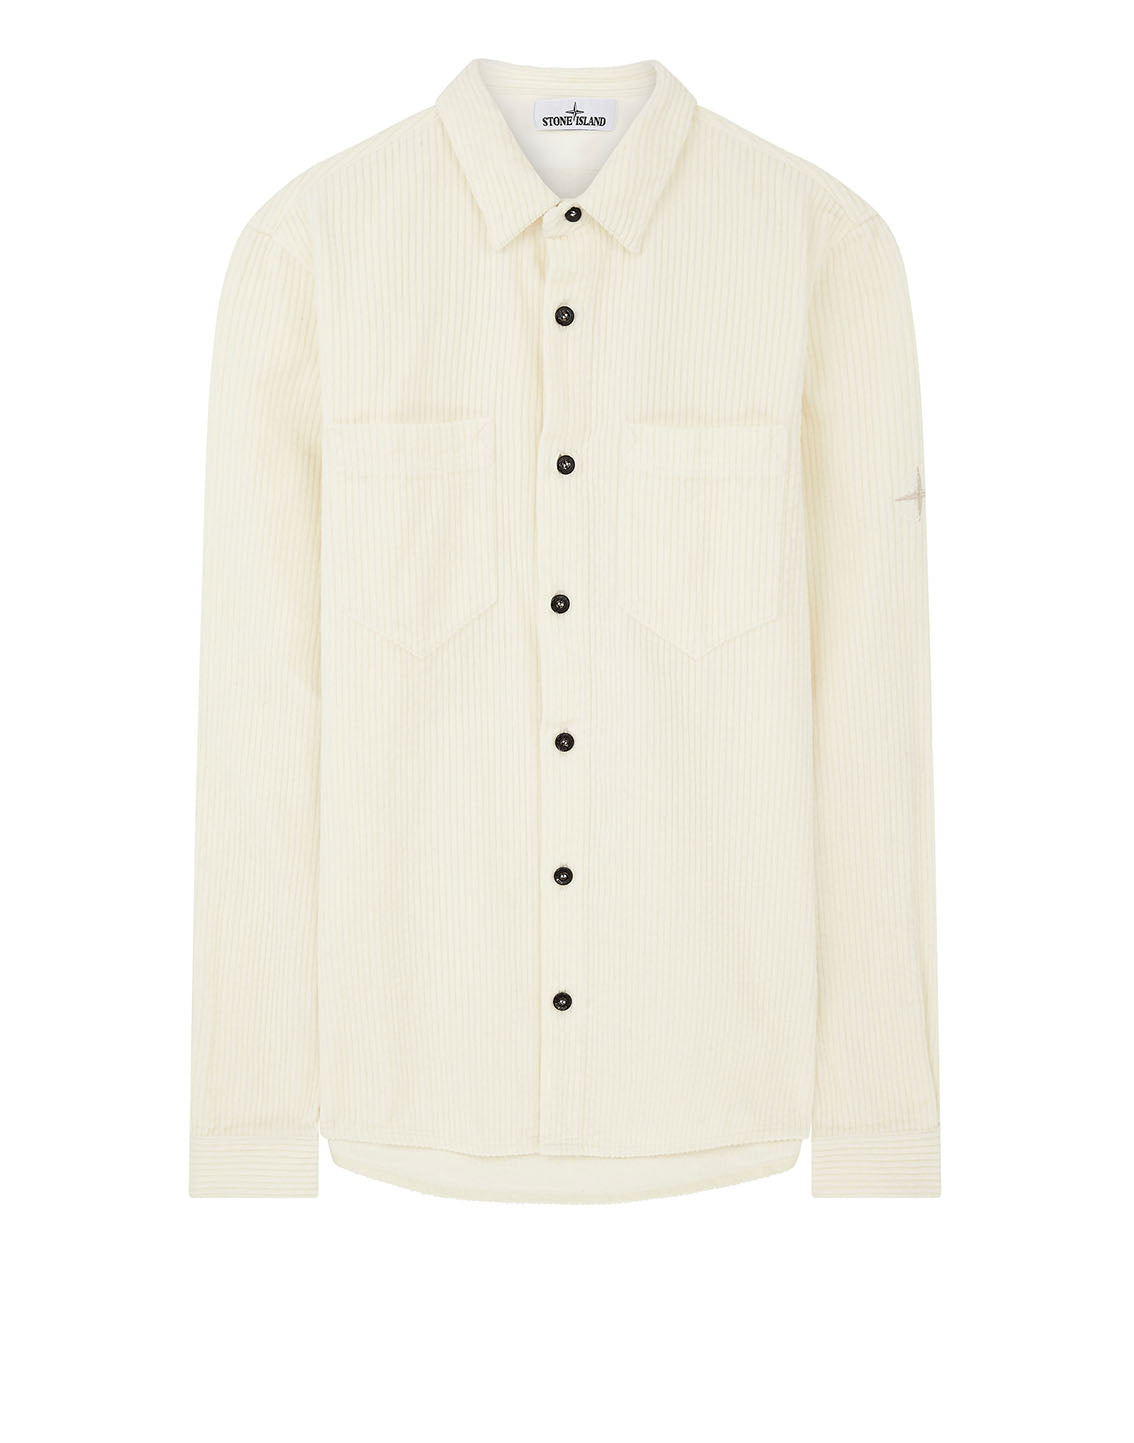 11209 Corduroy Overshirt in Ivory